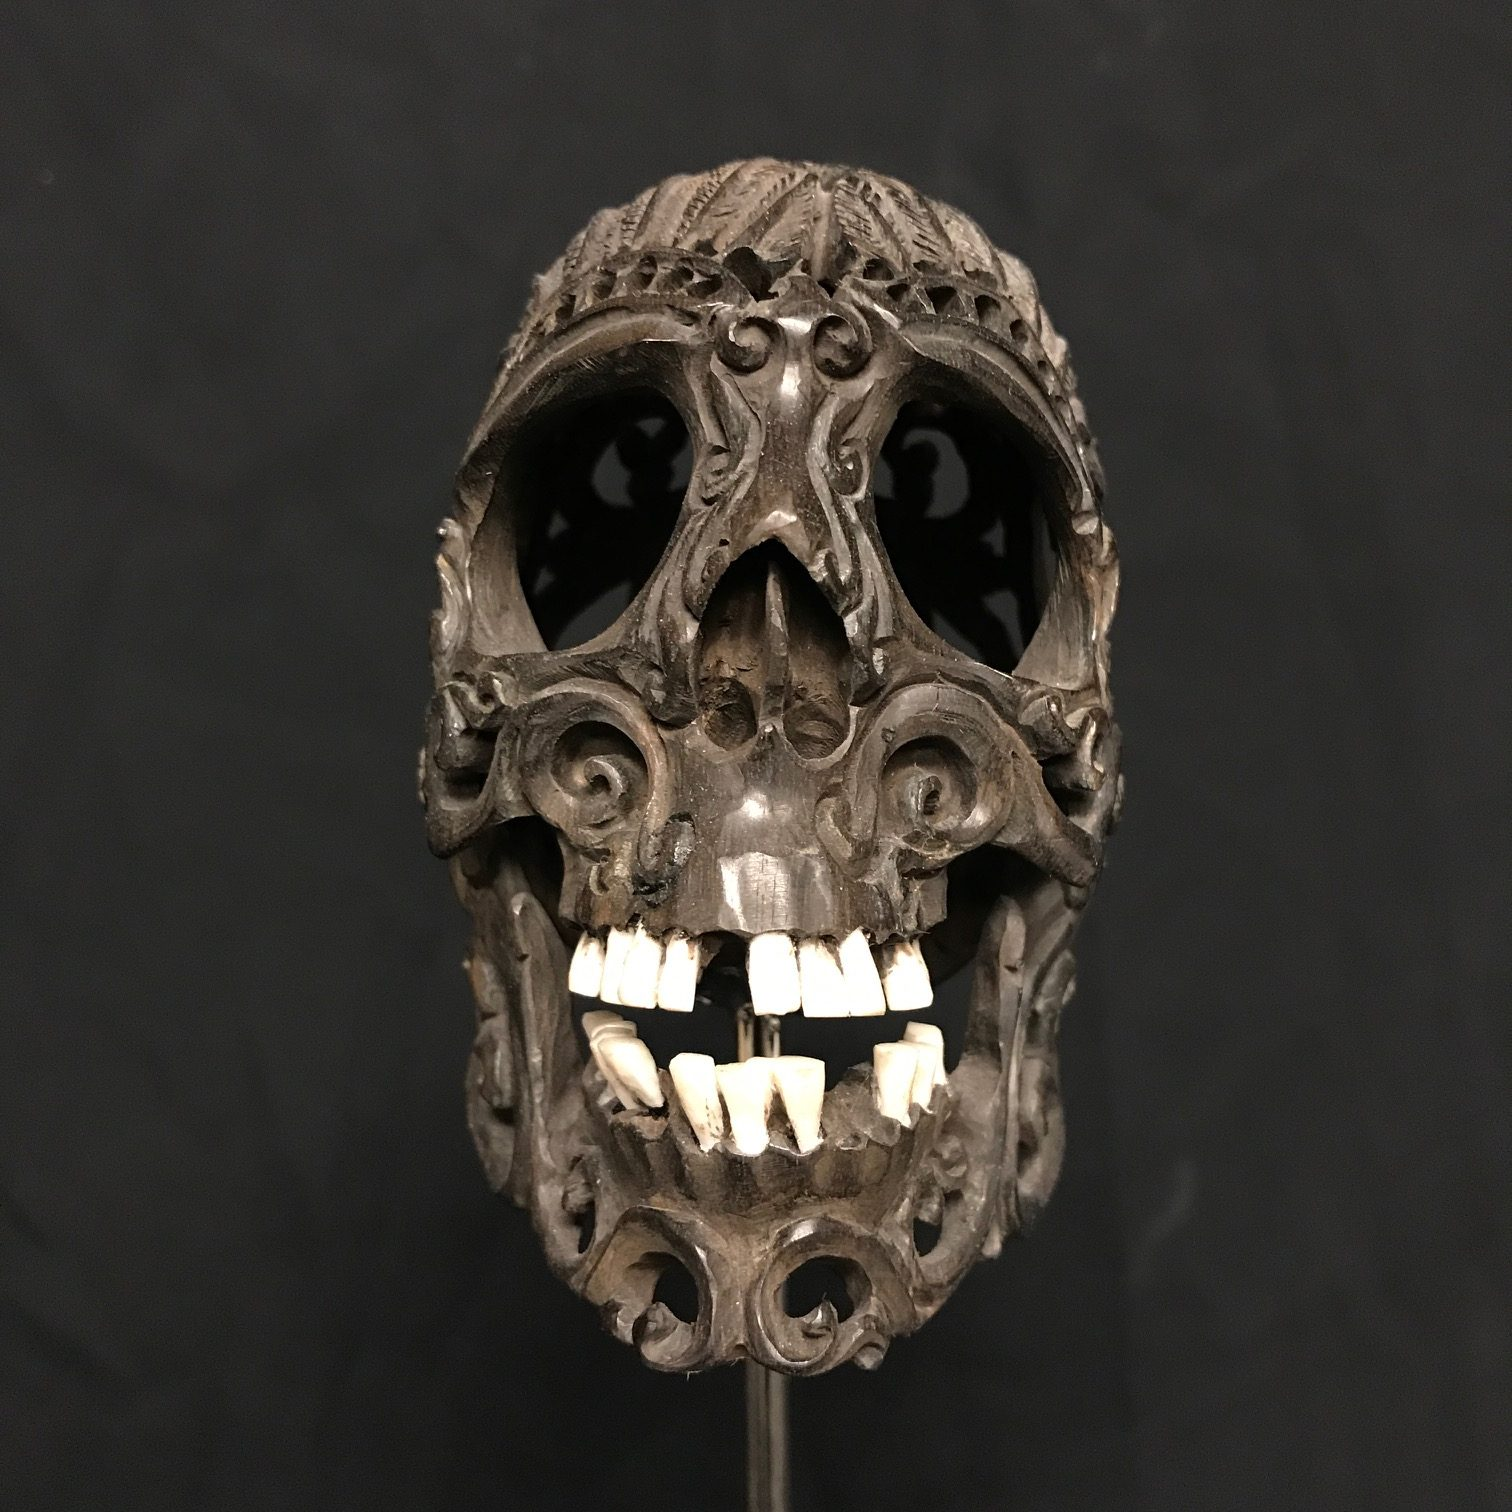 Intricately Carved Wooden Skull With Bone Teeth Mounted On A Metal Stand